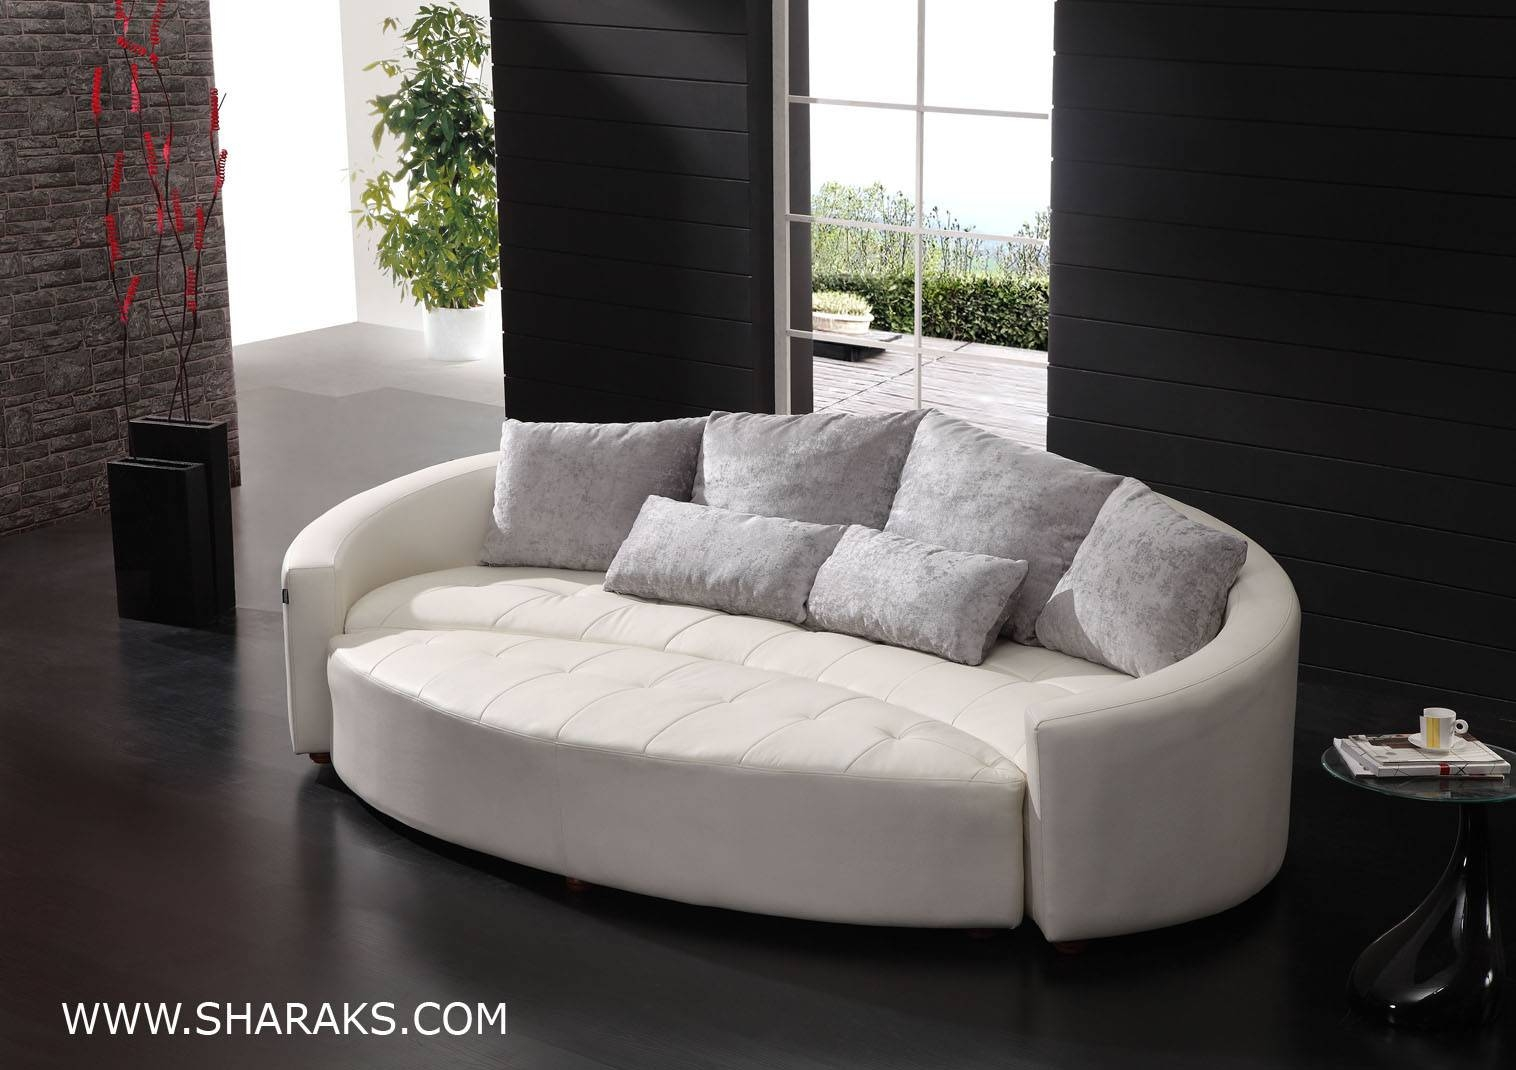 Sofas Center : Furniture Foot Stools Big Round Sofa Chair Large regarding Big Round Sofa Chairs (Image 23 of 30)